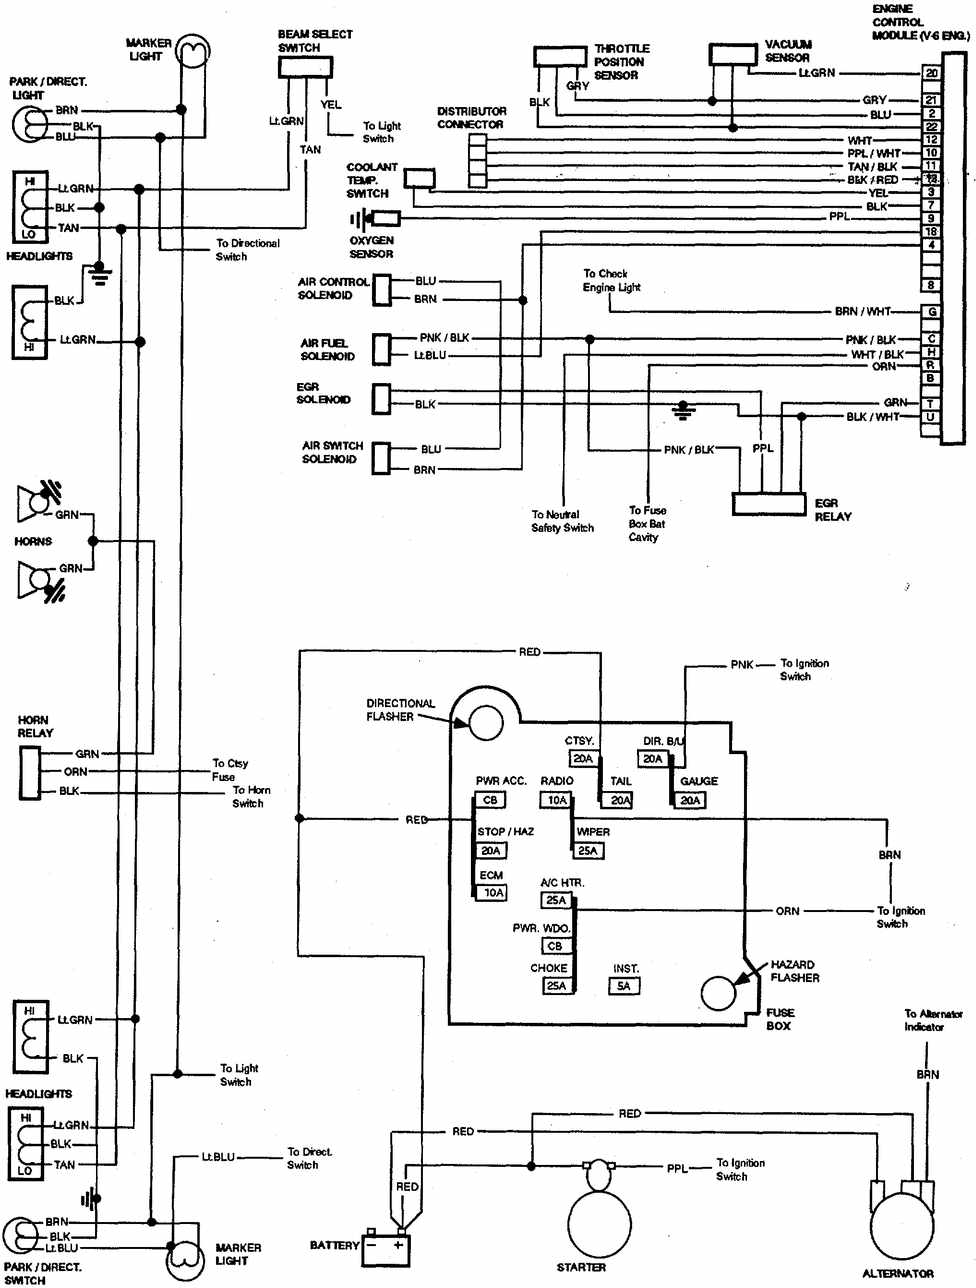 small block chevy hei wiring diagram chevrolet v8 trucks 1981 1987 electrical wiring diagram small block chevy ignition wiring